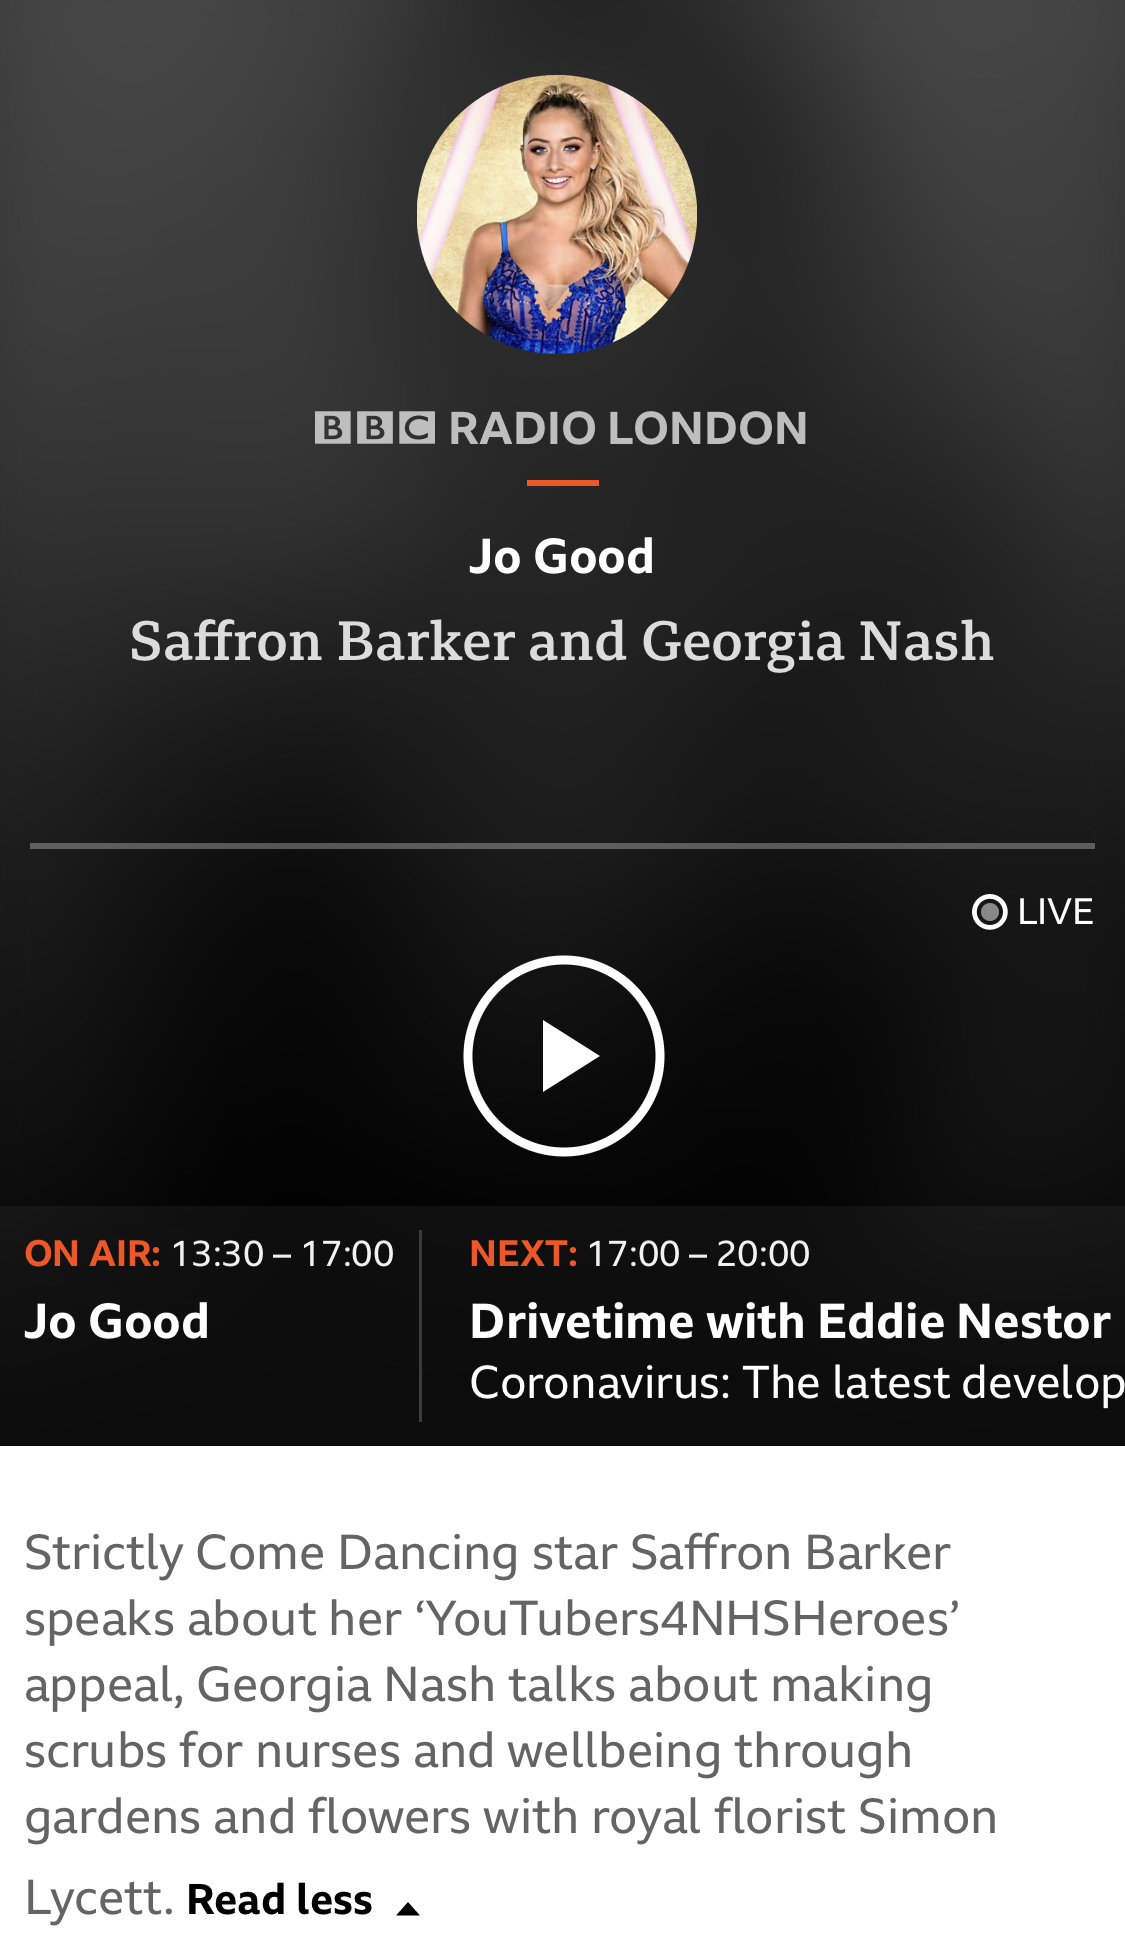 Forest Hill Fashion Designer Georgia Nash Interviewed On Bbc Radio London General Se23 Forum